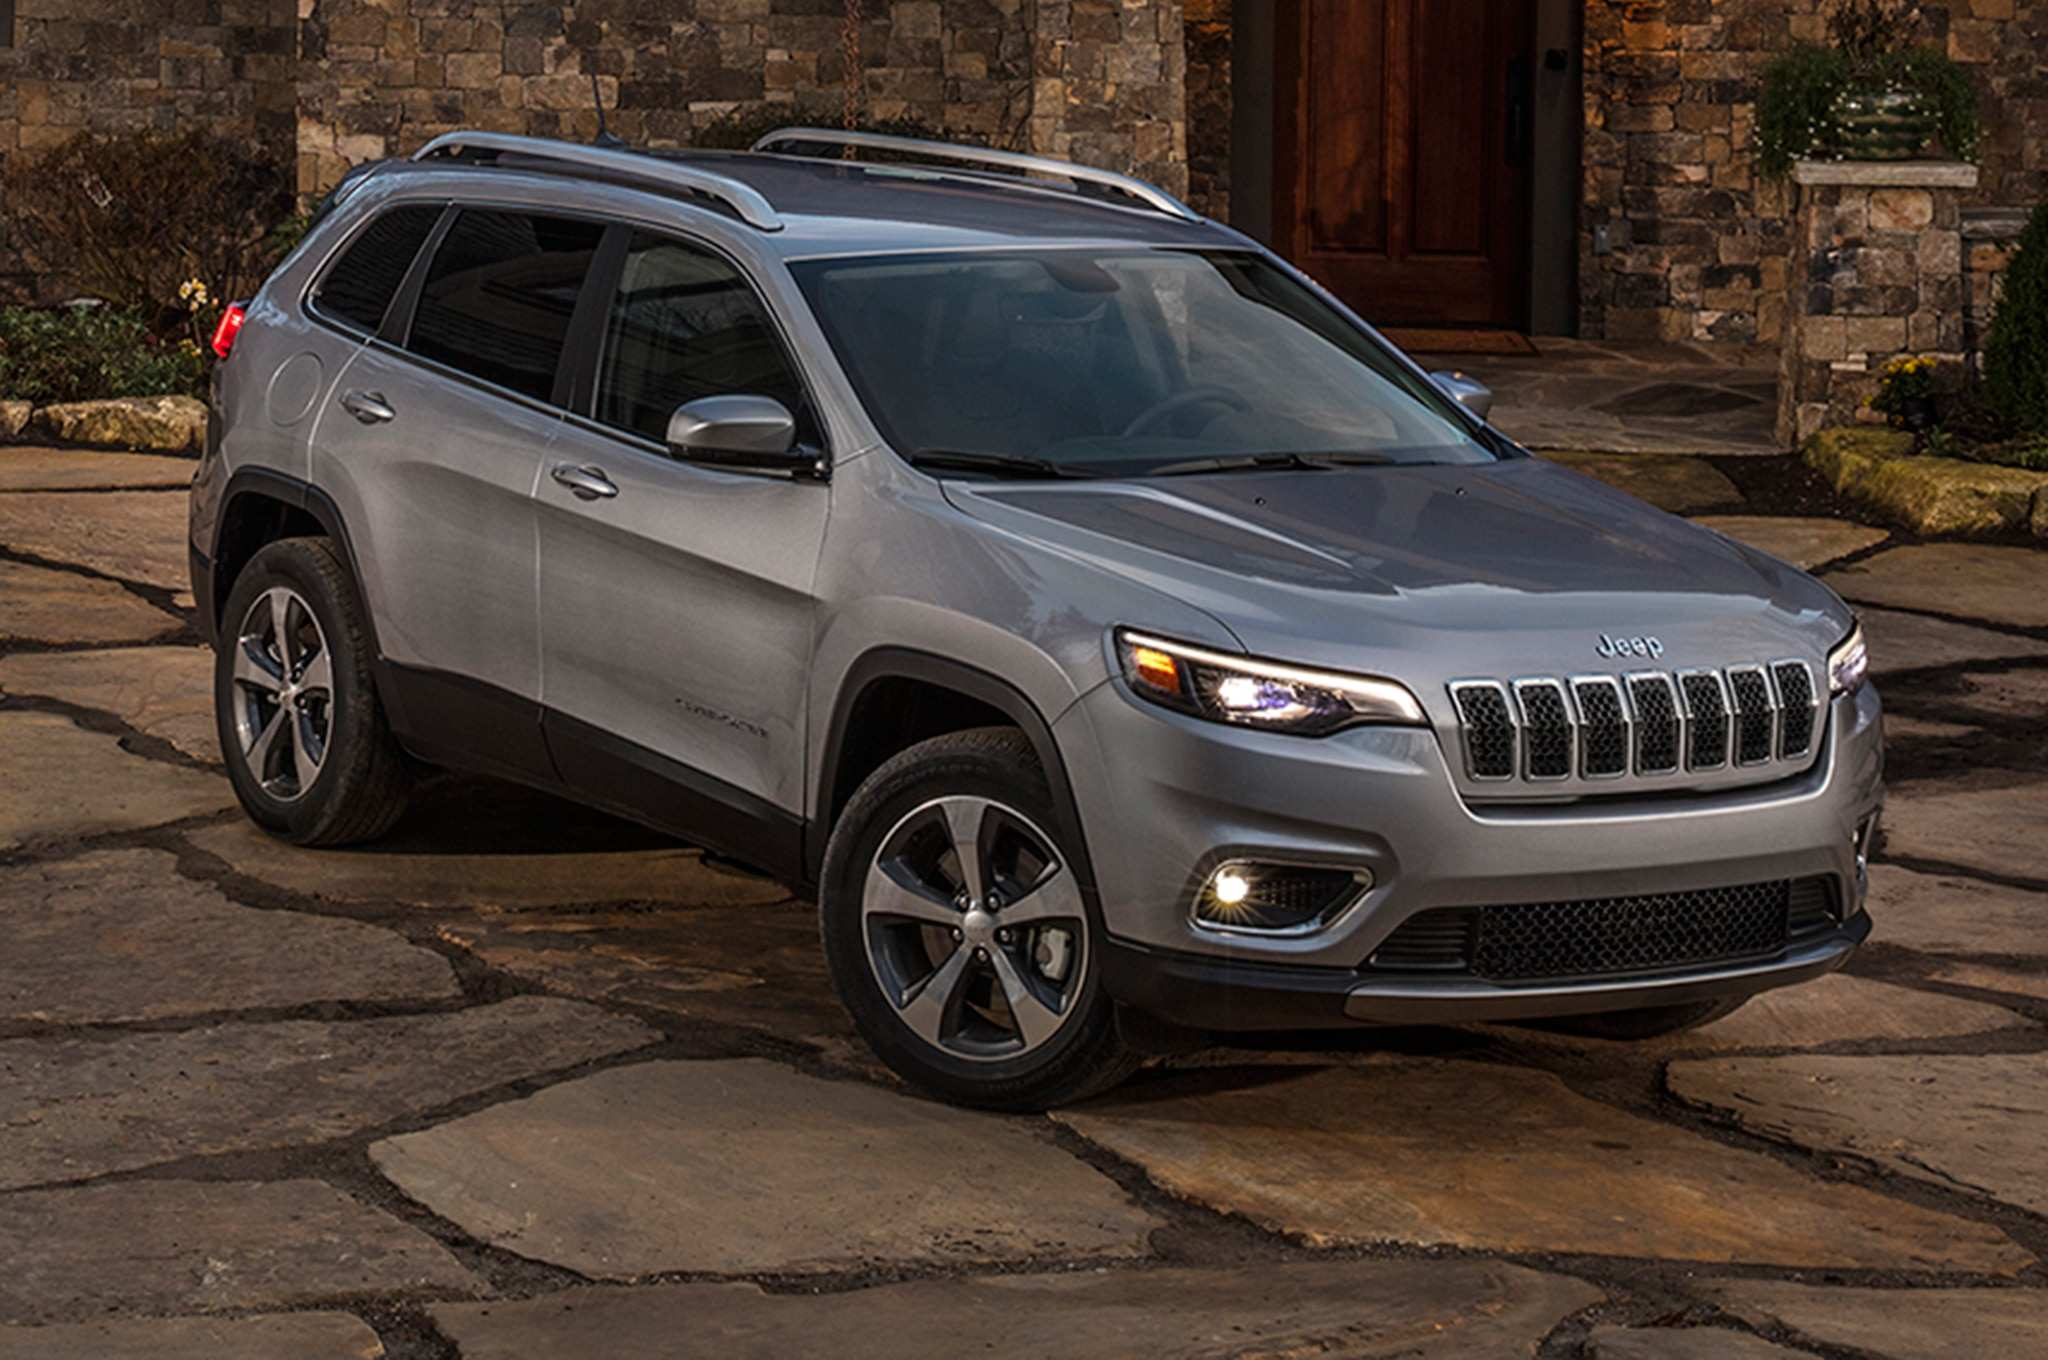 16 All New 2019 Jeep Latitude Wallpaper for 2019 Jeep Latitude